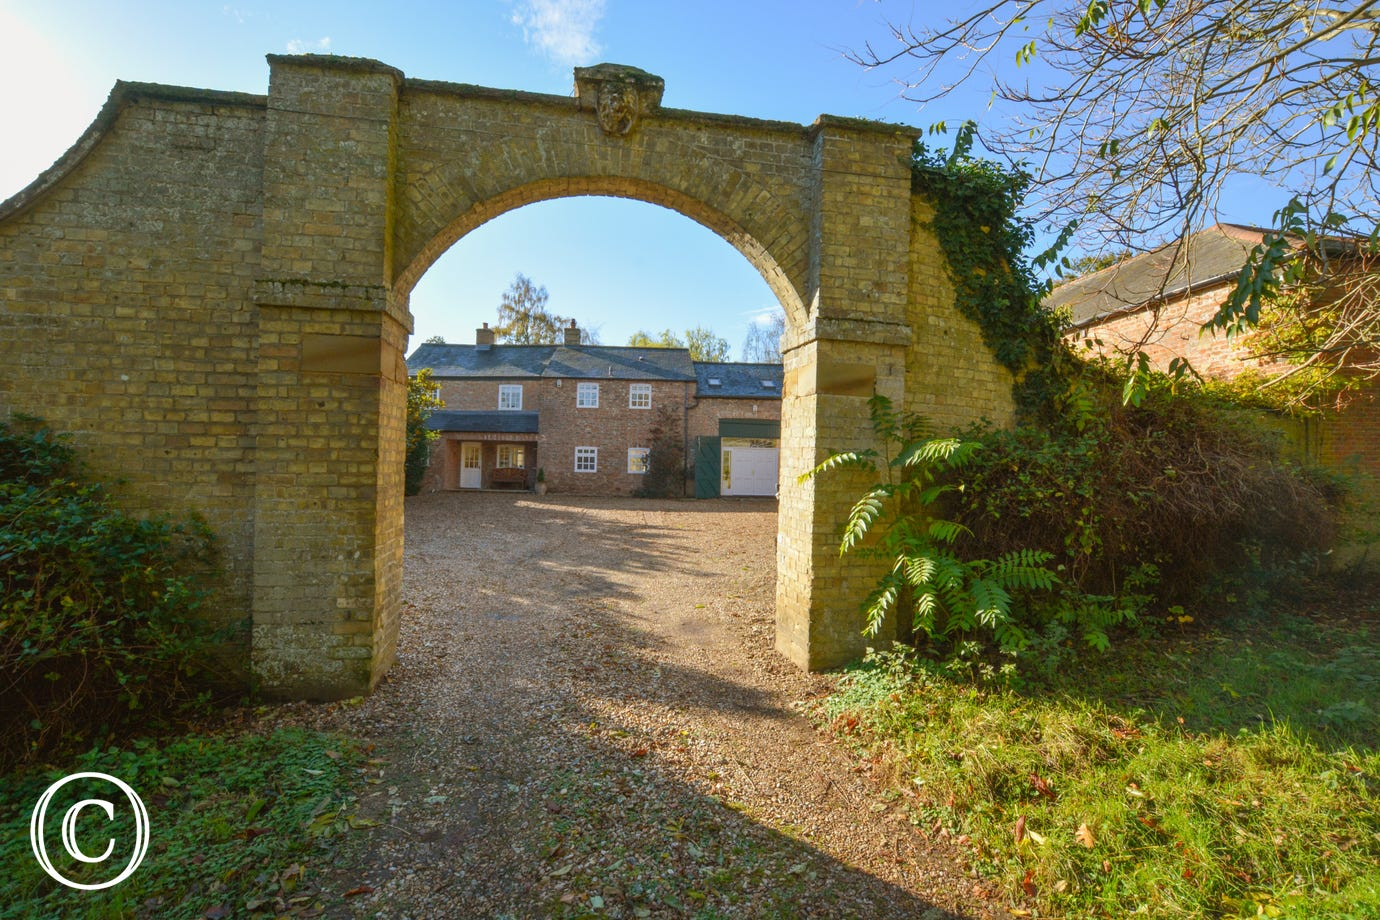 The old stable archway leading to Stable Cottage